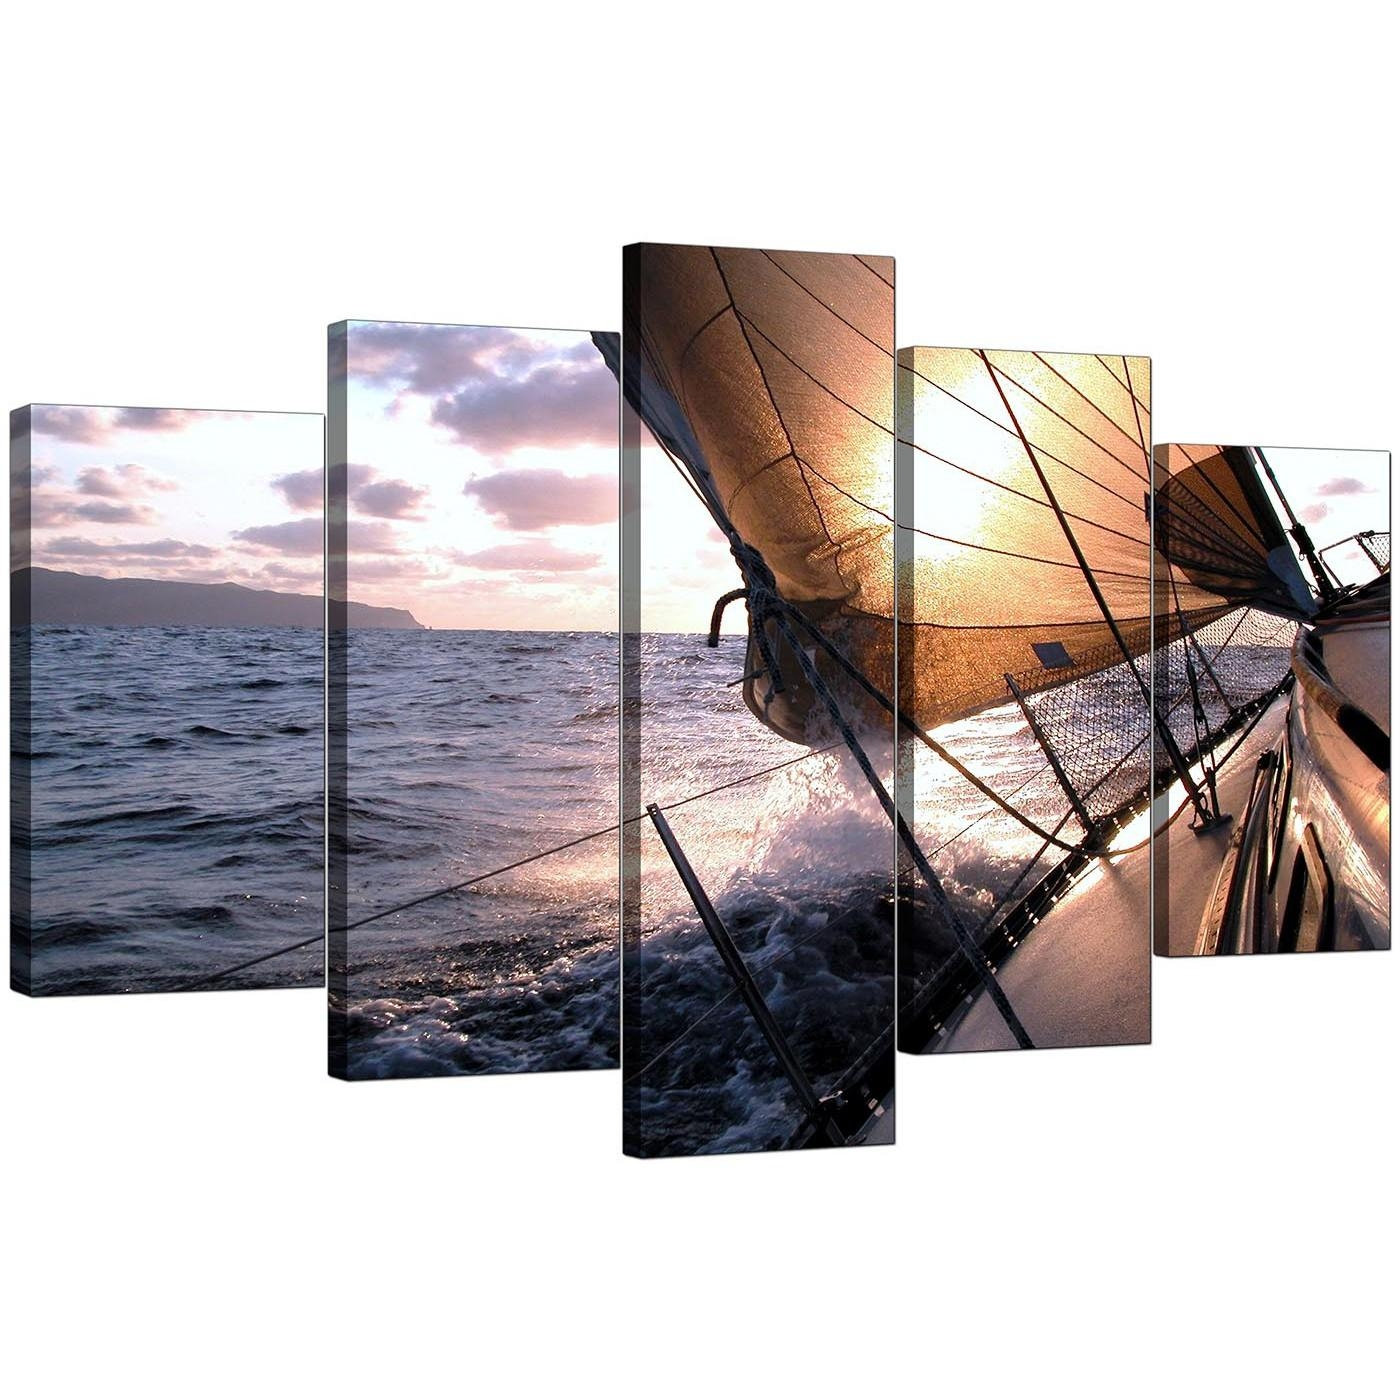 Boat Canvas Prints Uk For Your Living Room – 5 Piece In 4 Piece Canvas Art Sets (Image 3 of 20)